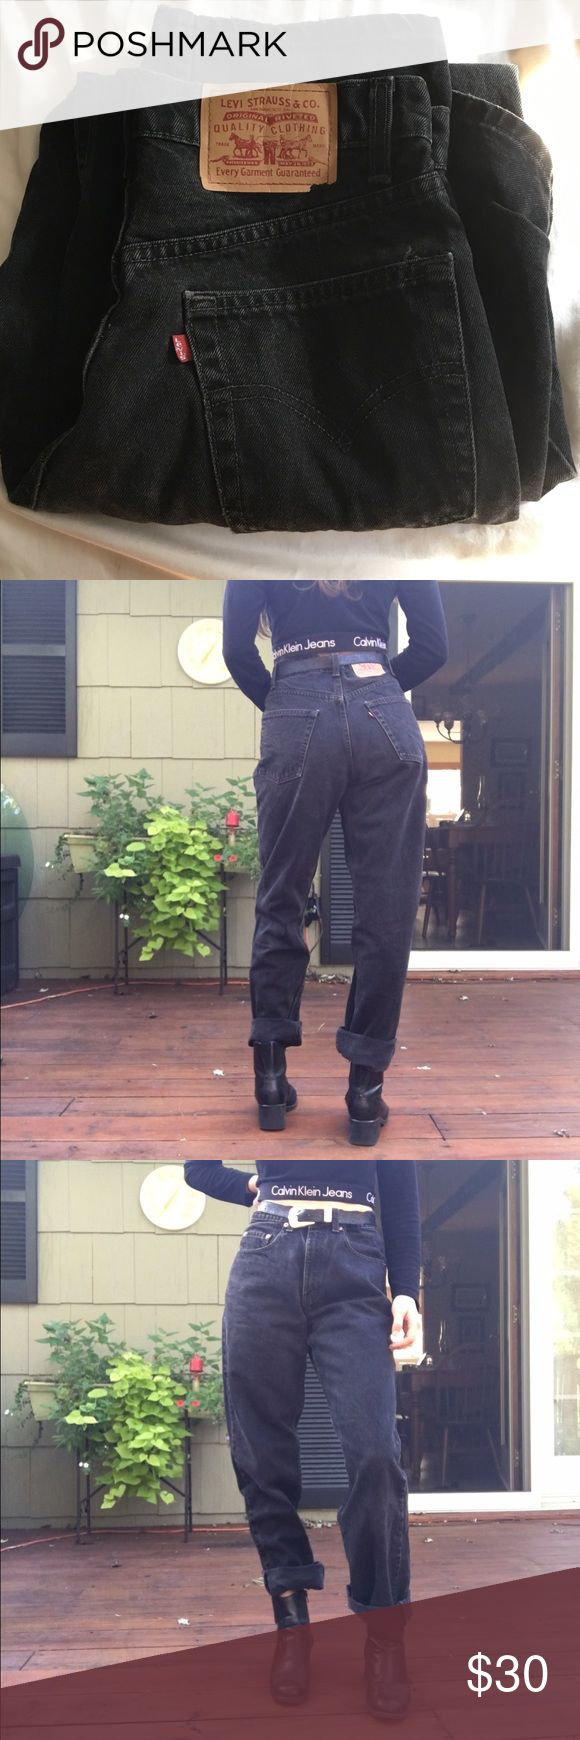 Vintage Levis 550 Jeans This piece is a classic. Vintage high waisted Levis 550! Measurements; waist: 30 rise: 11 inseam: 32 perfect for Halloween!!! Levi's Jeans